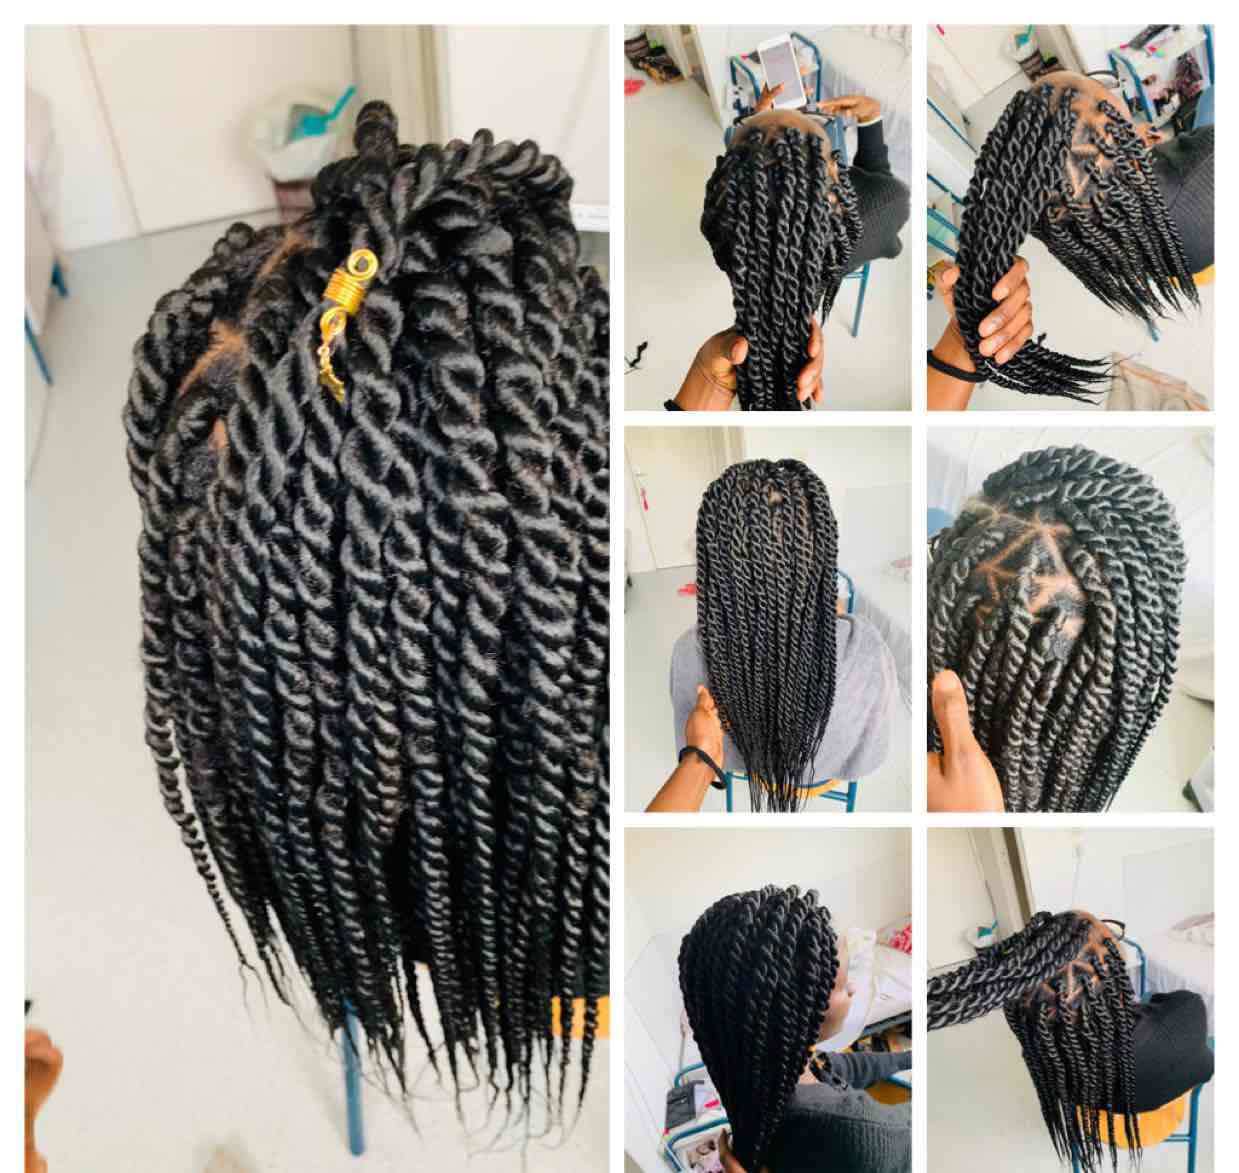 salon de coiffure afro tresse tresses box braids crochet braids vanilles tissages paris 75 77 78 91 92 93 94 95 KBSWDWLA